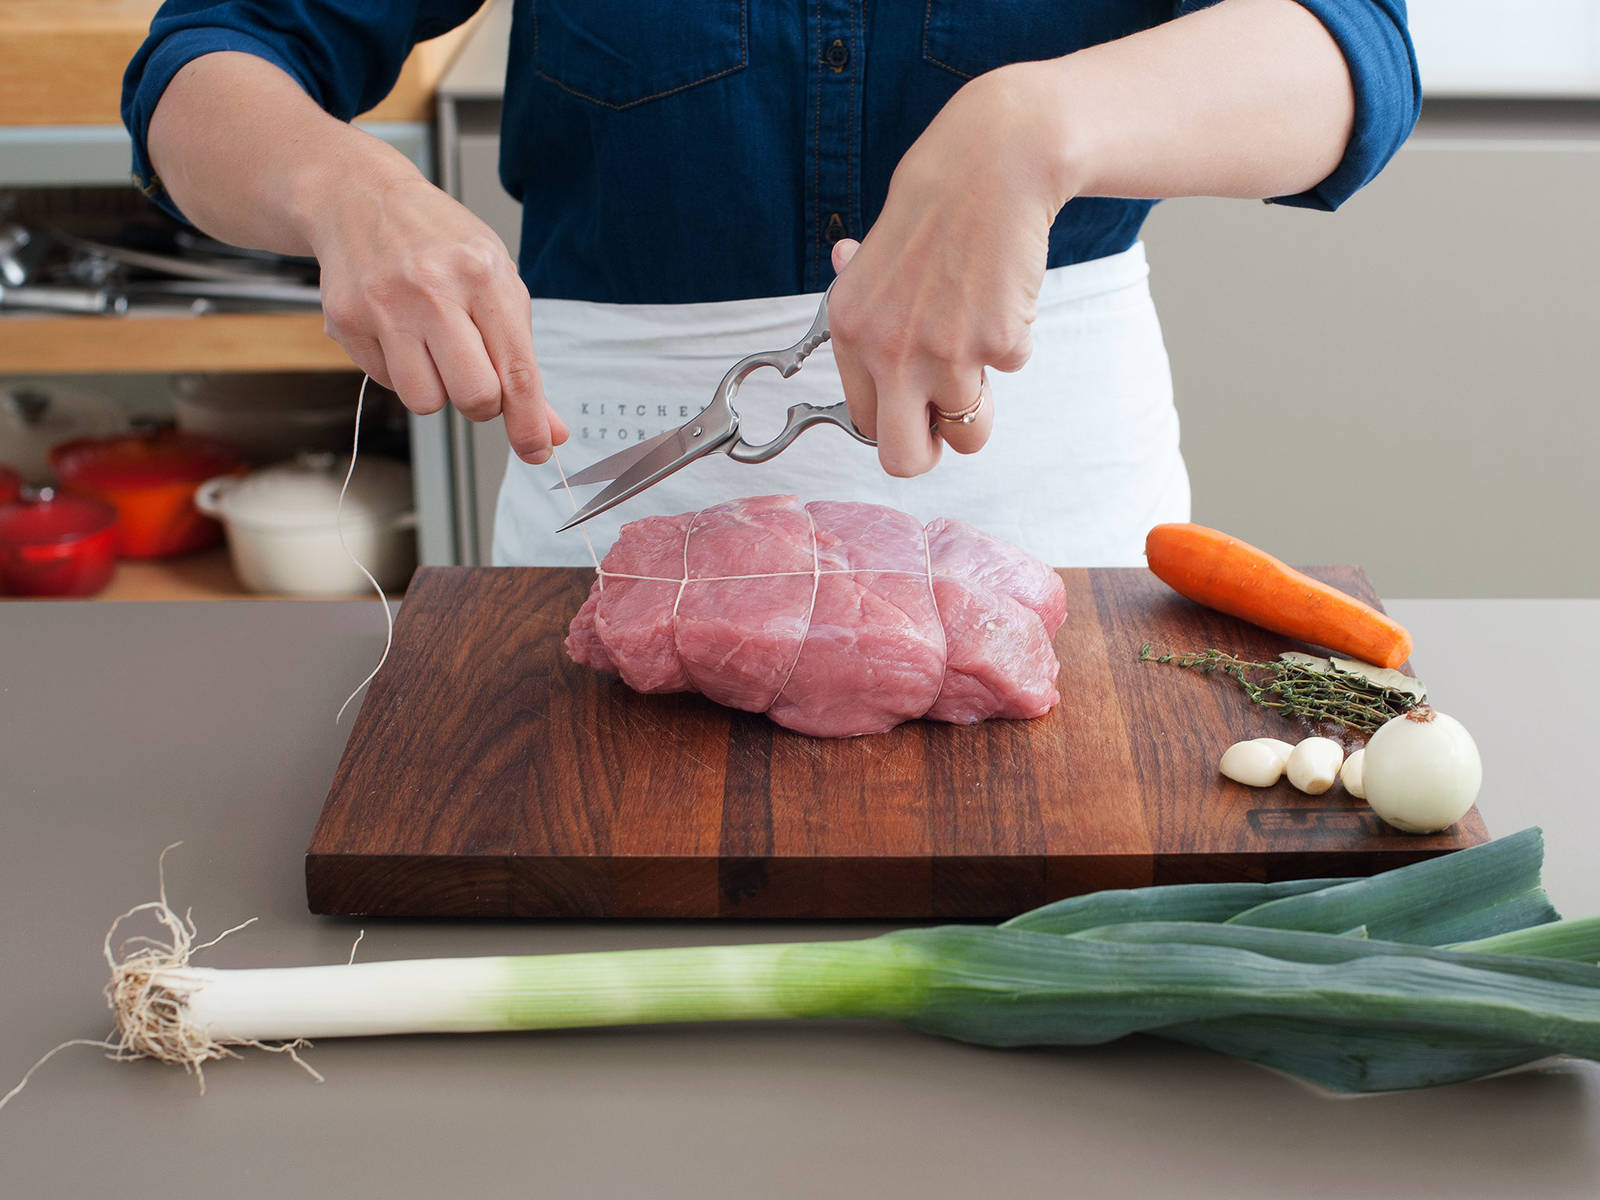 Trim excess fat from the veal and truss it with cooking string. Roughly chop celery, carrot, onion, and leek